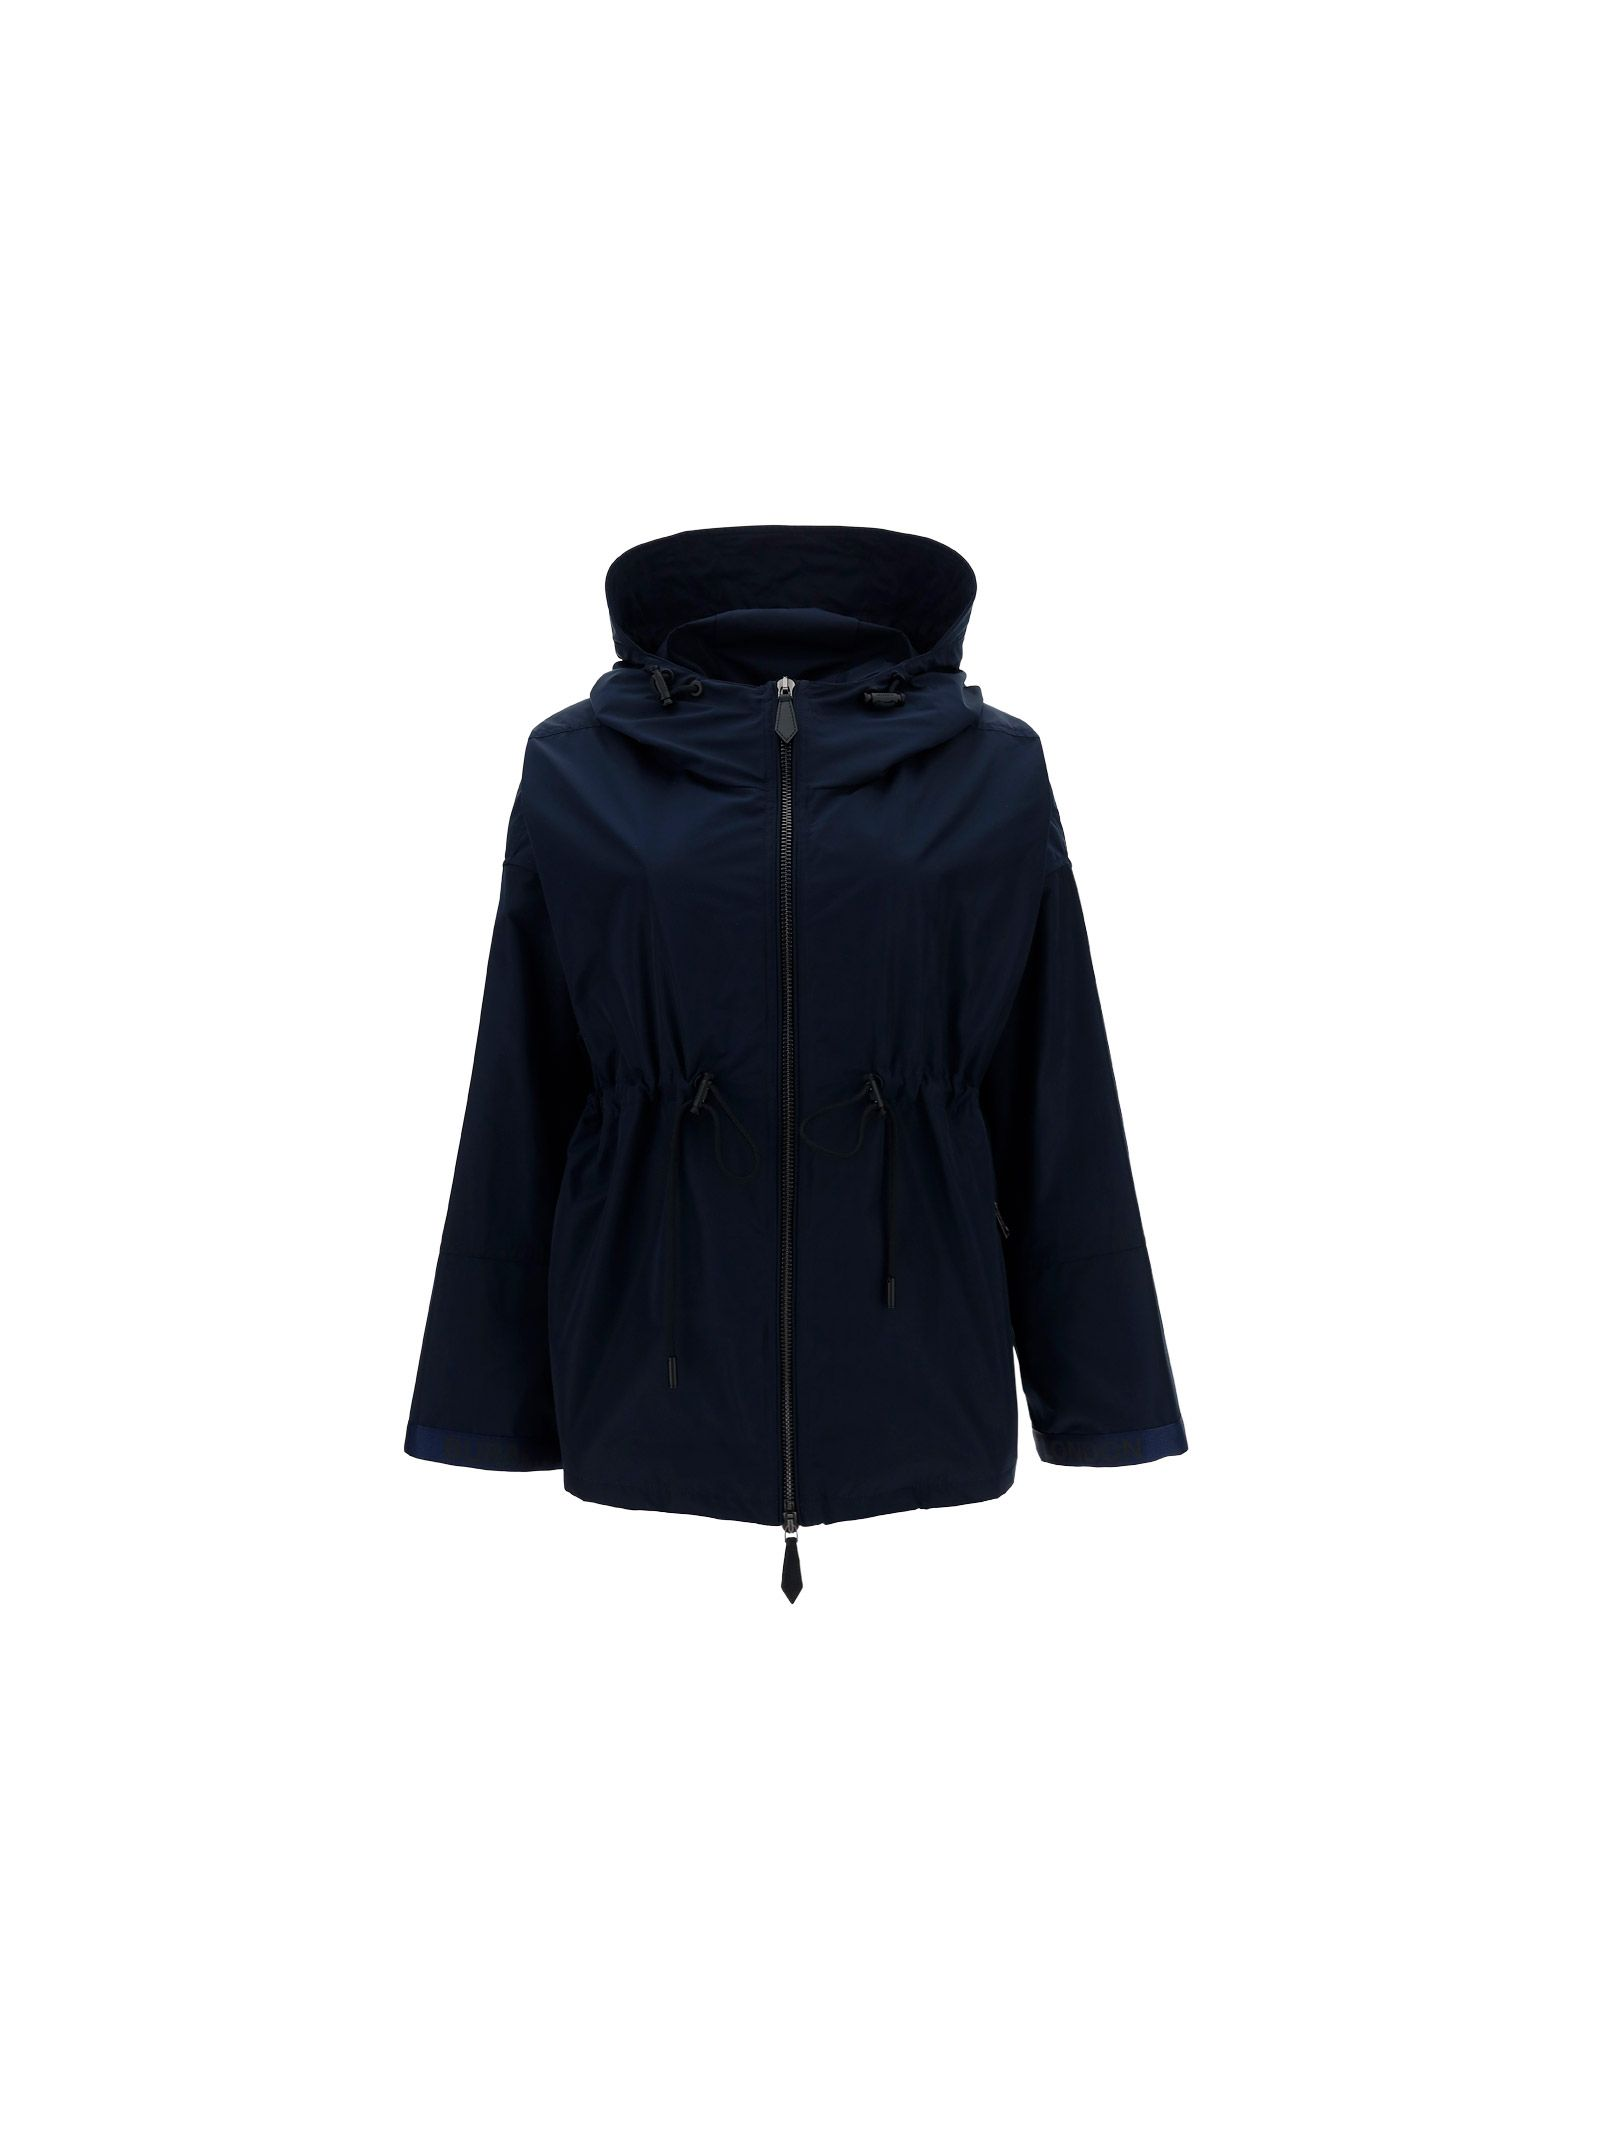 Burberry BURBERRY WOMEN'S BLUE POLYESTER OUTERWEAR JACKET